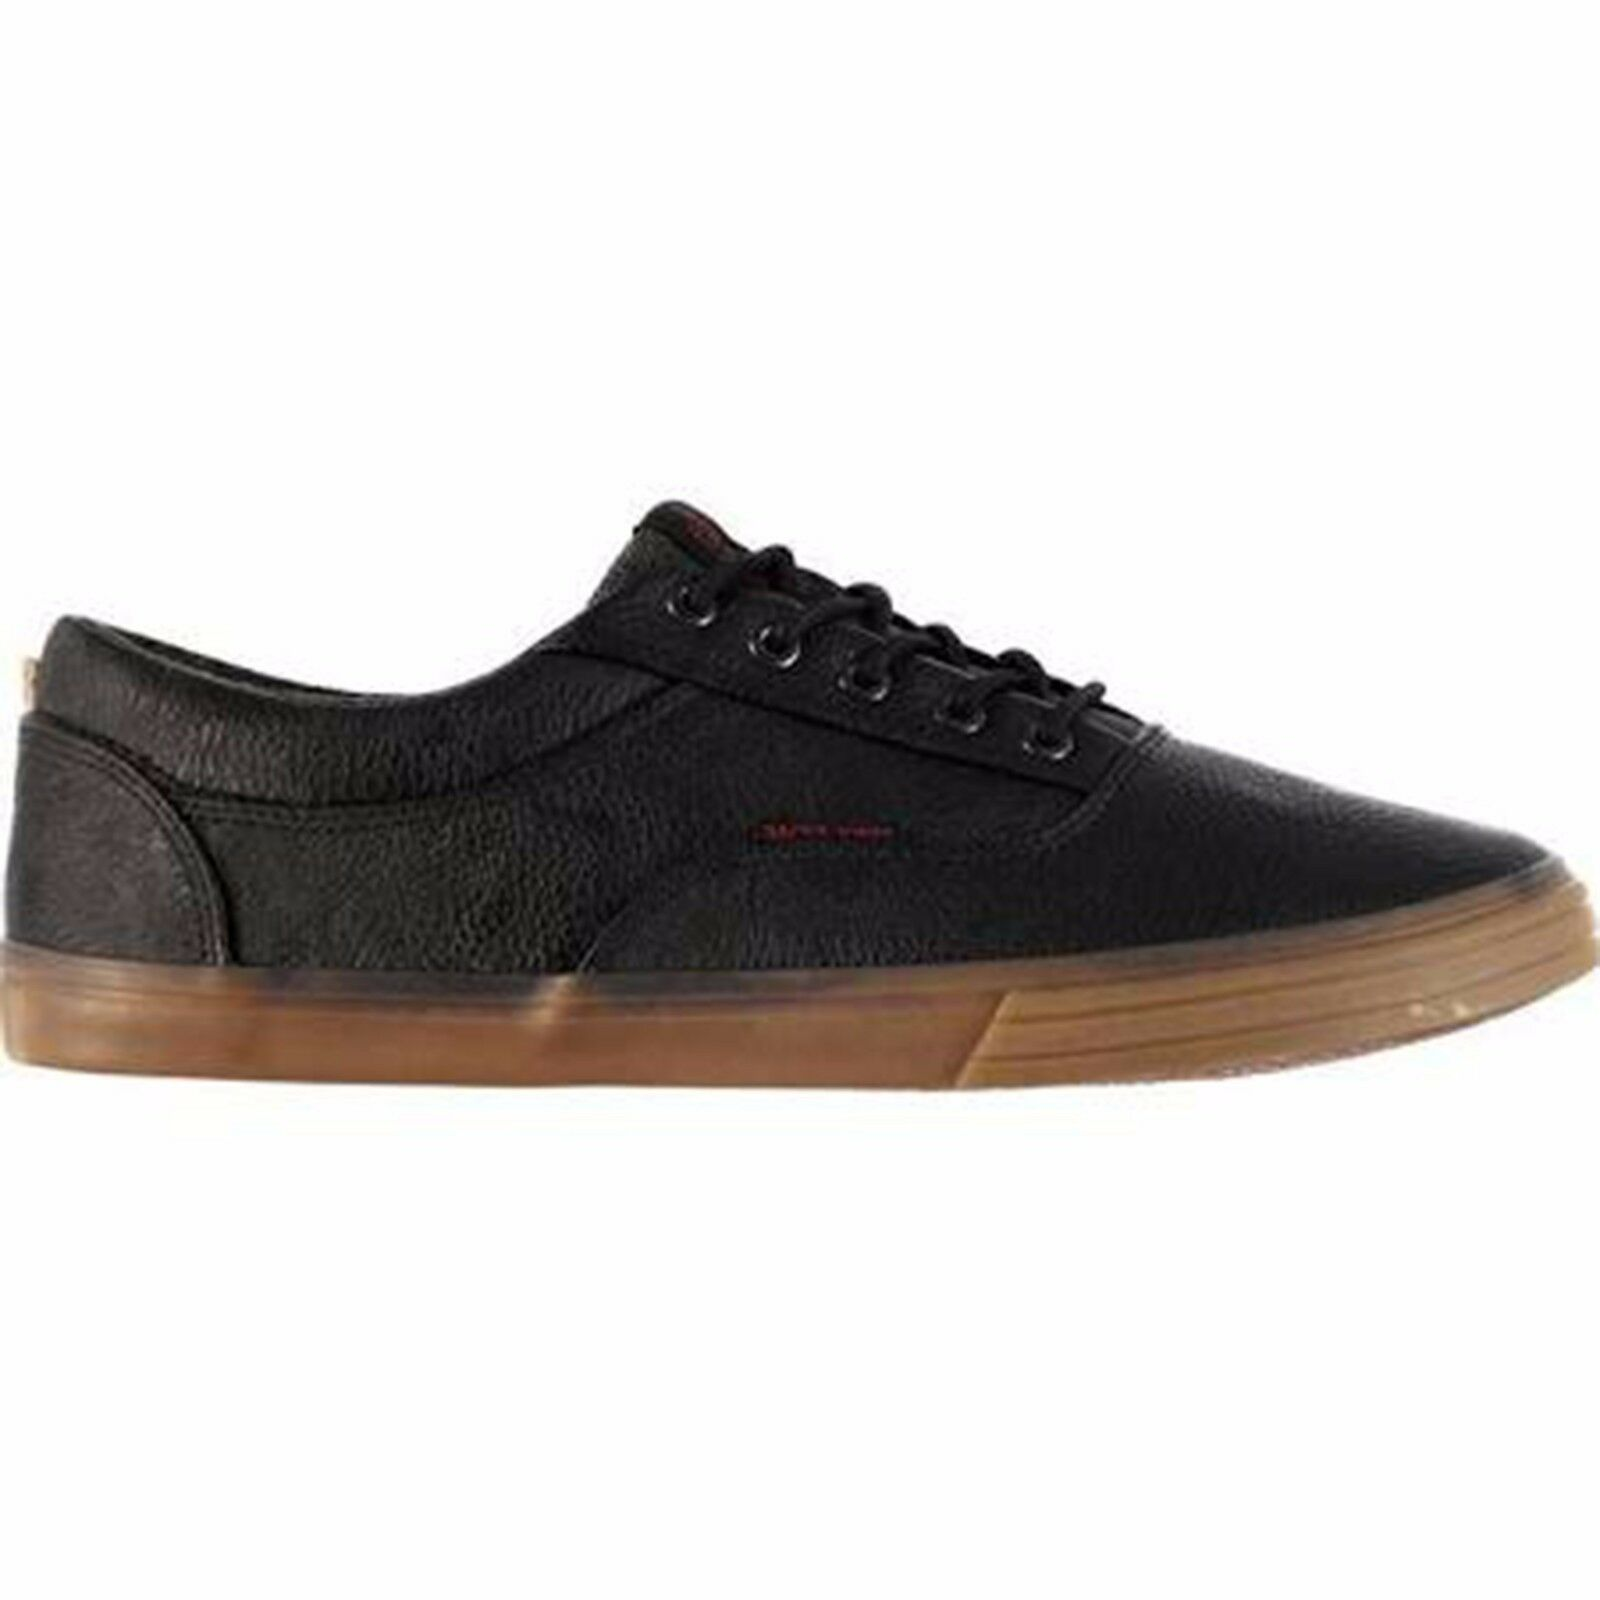 uk availability a3046 ea8f0 Jack Jack Jack and Jones jfw visión PU Sneaker Antracita (Negro) f980ed. ""